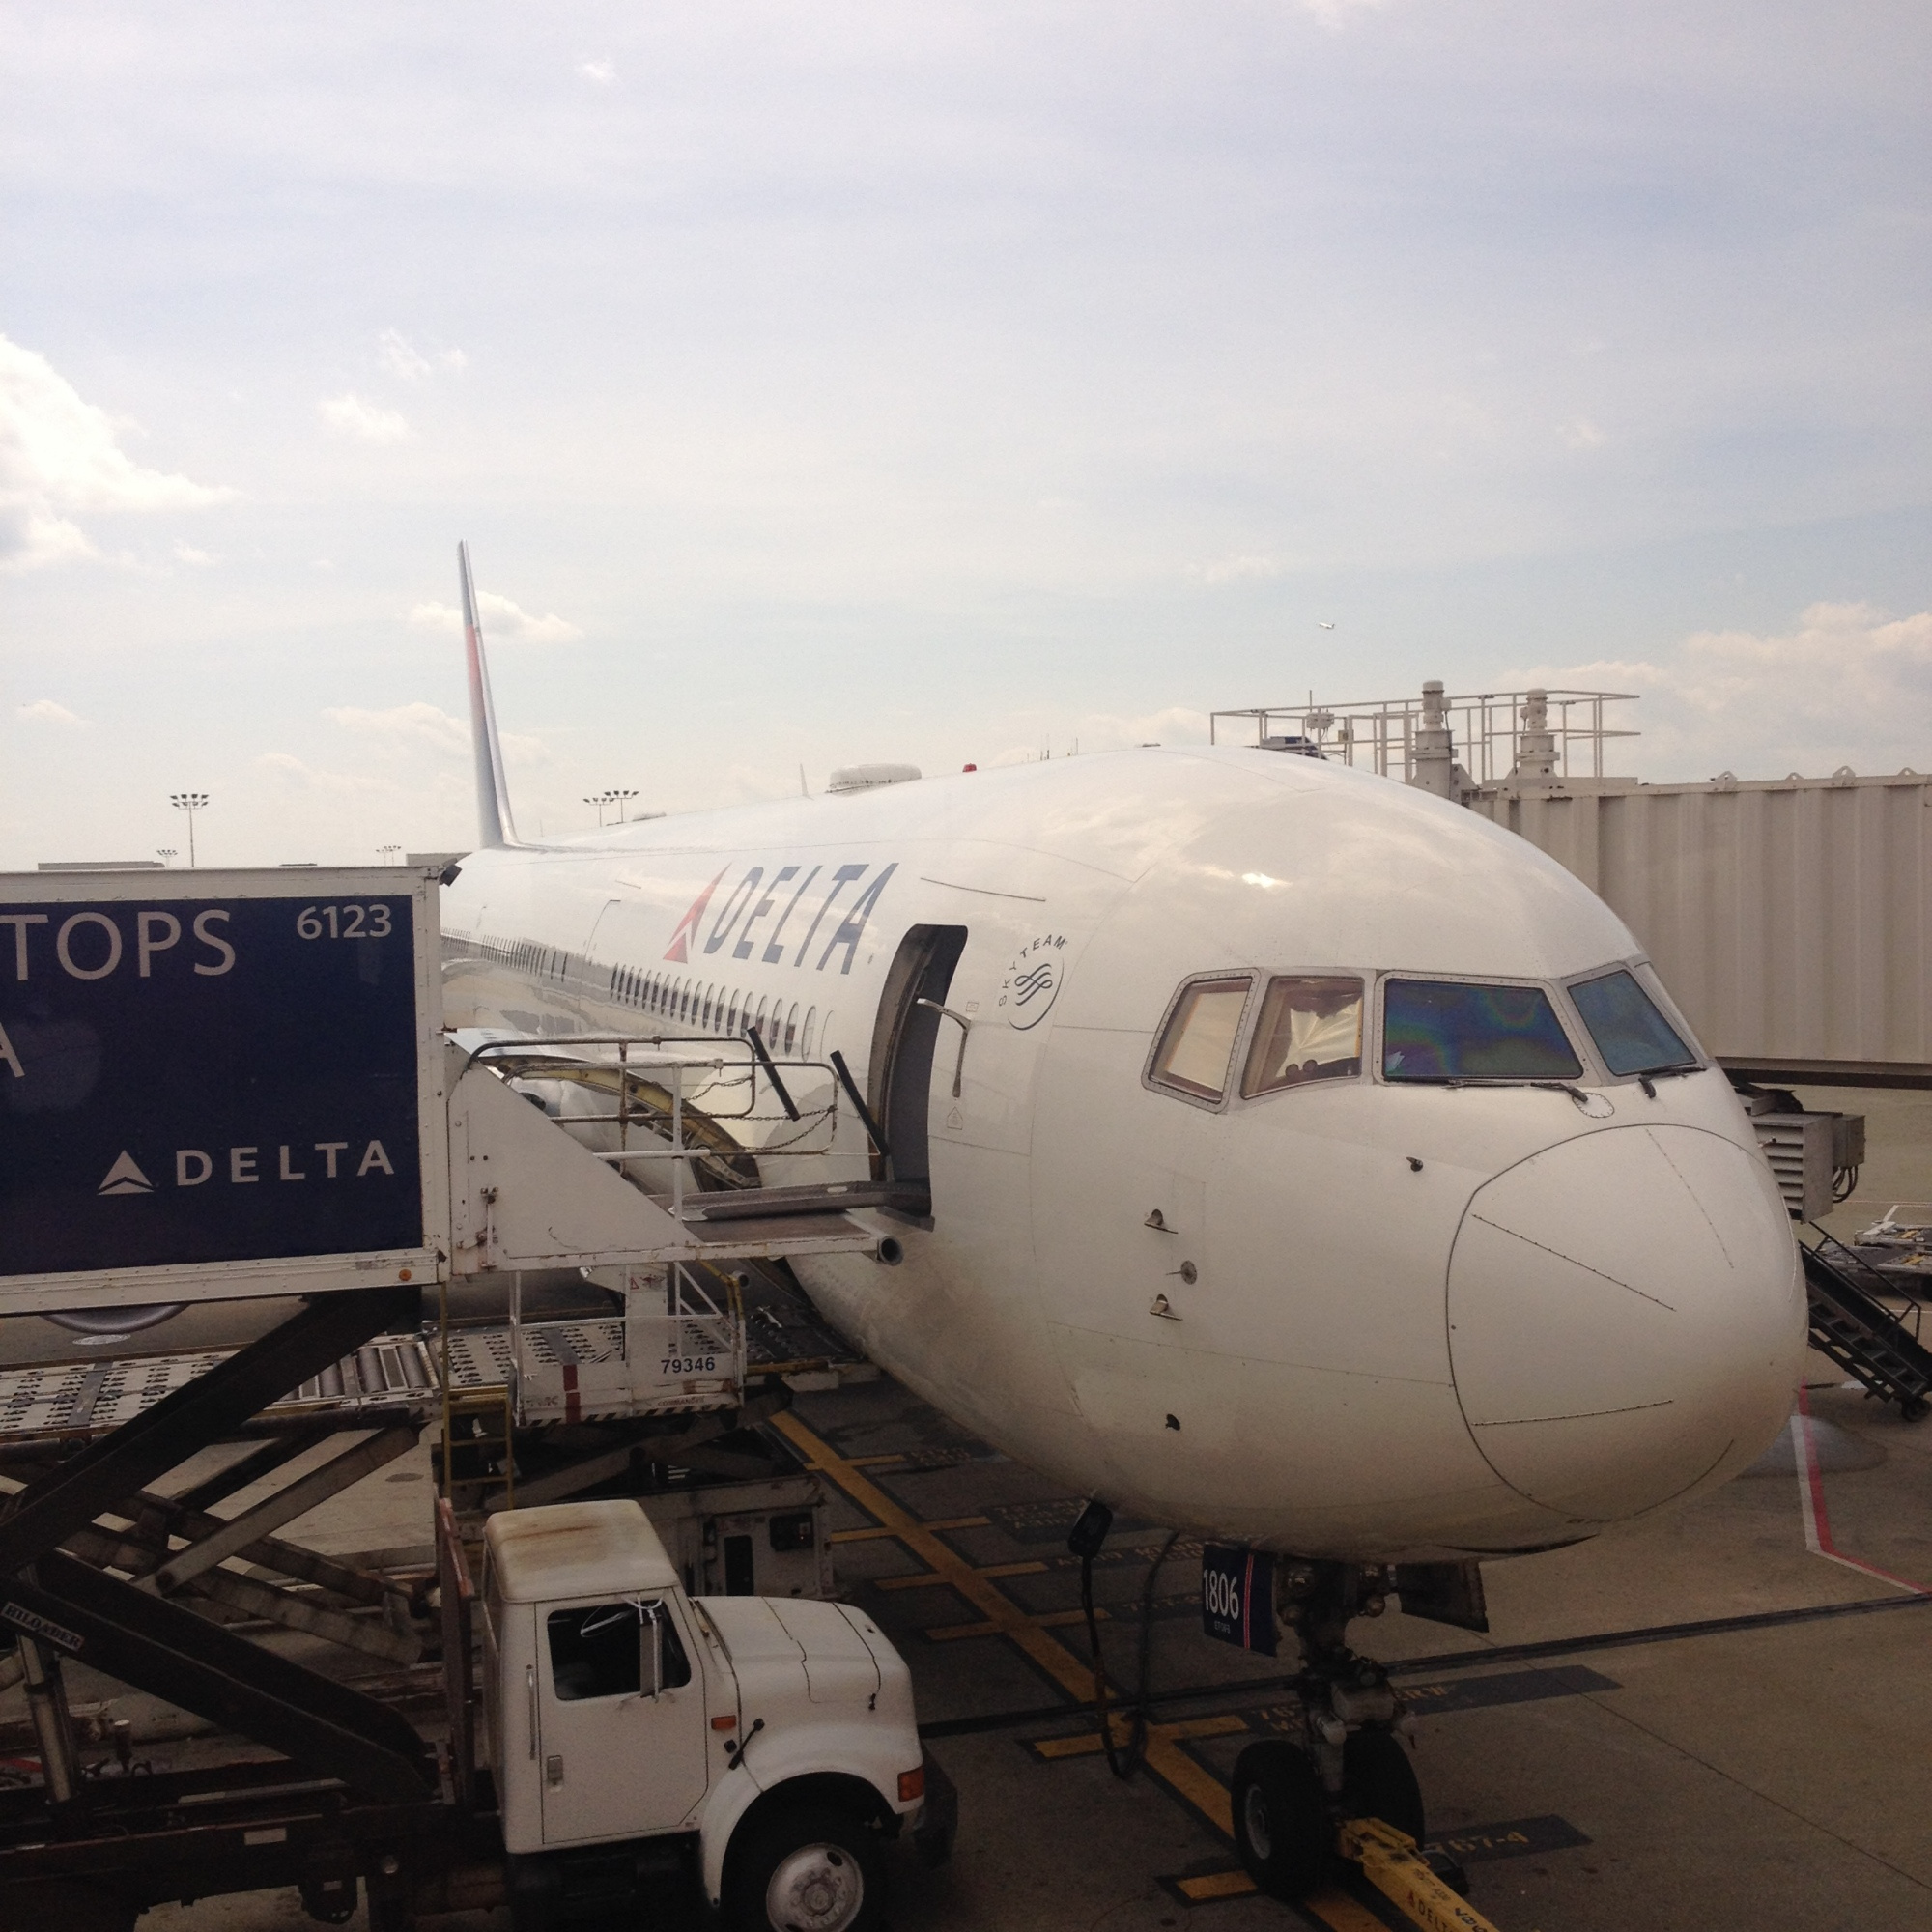 Boeing 767 at the gate in ATL